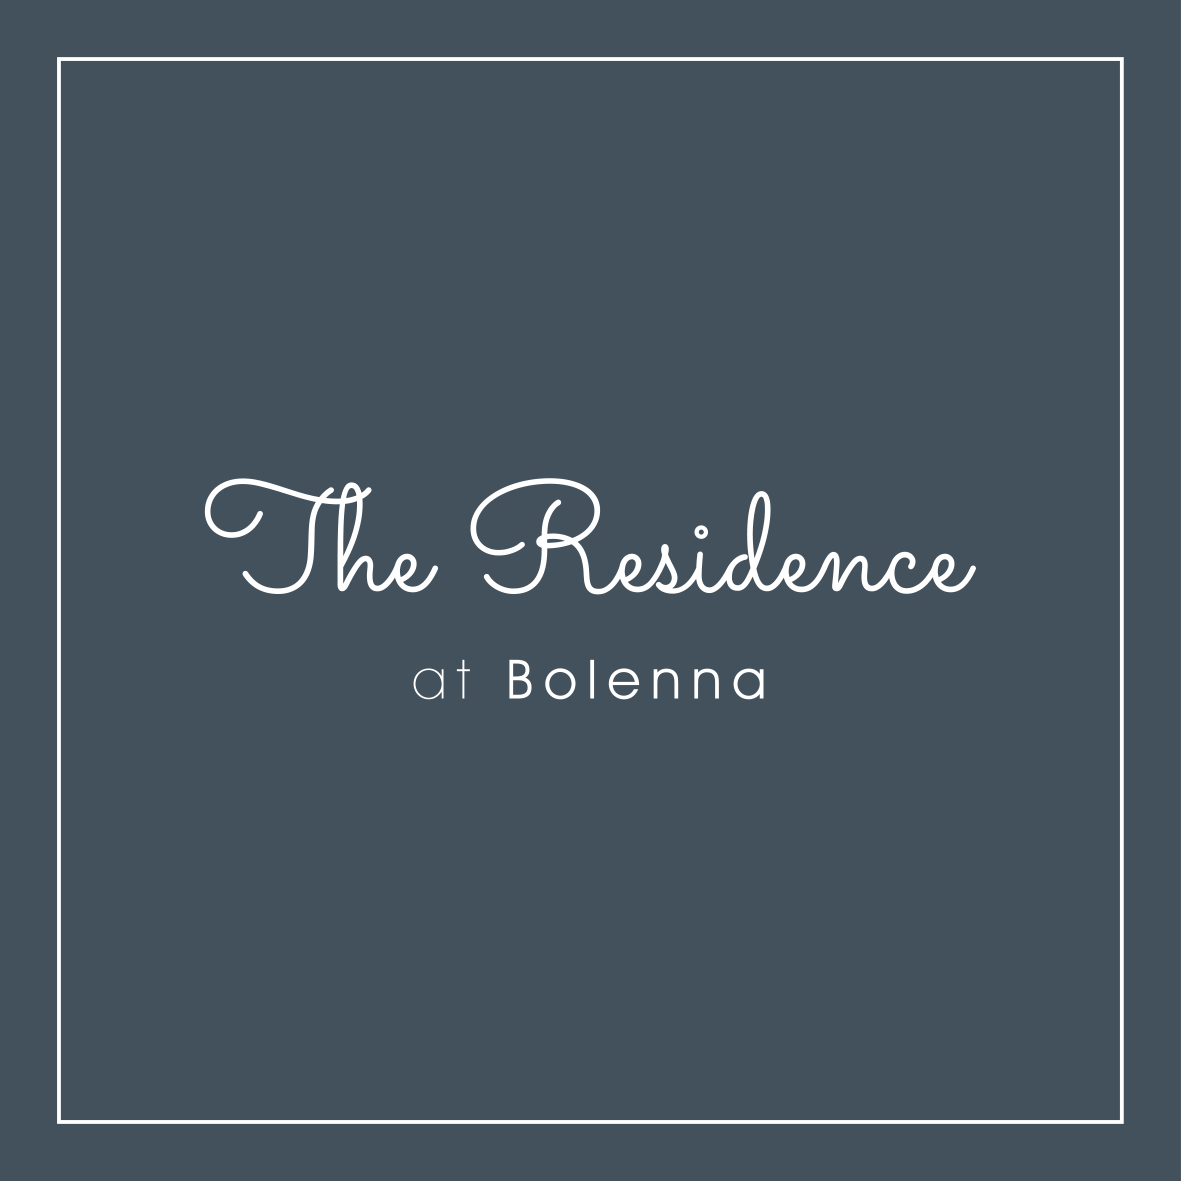 The Residence at Bolenna